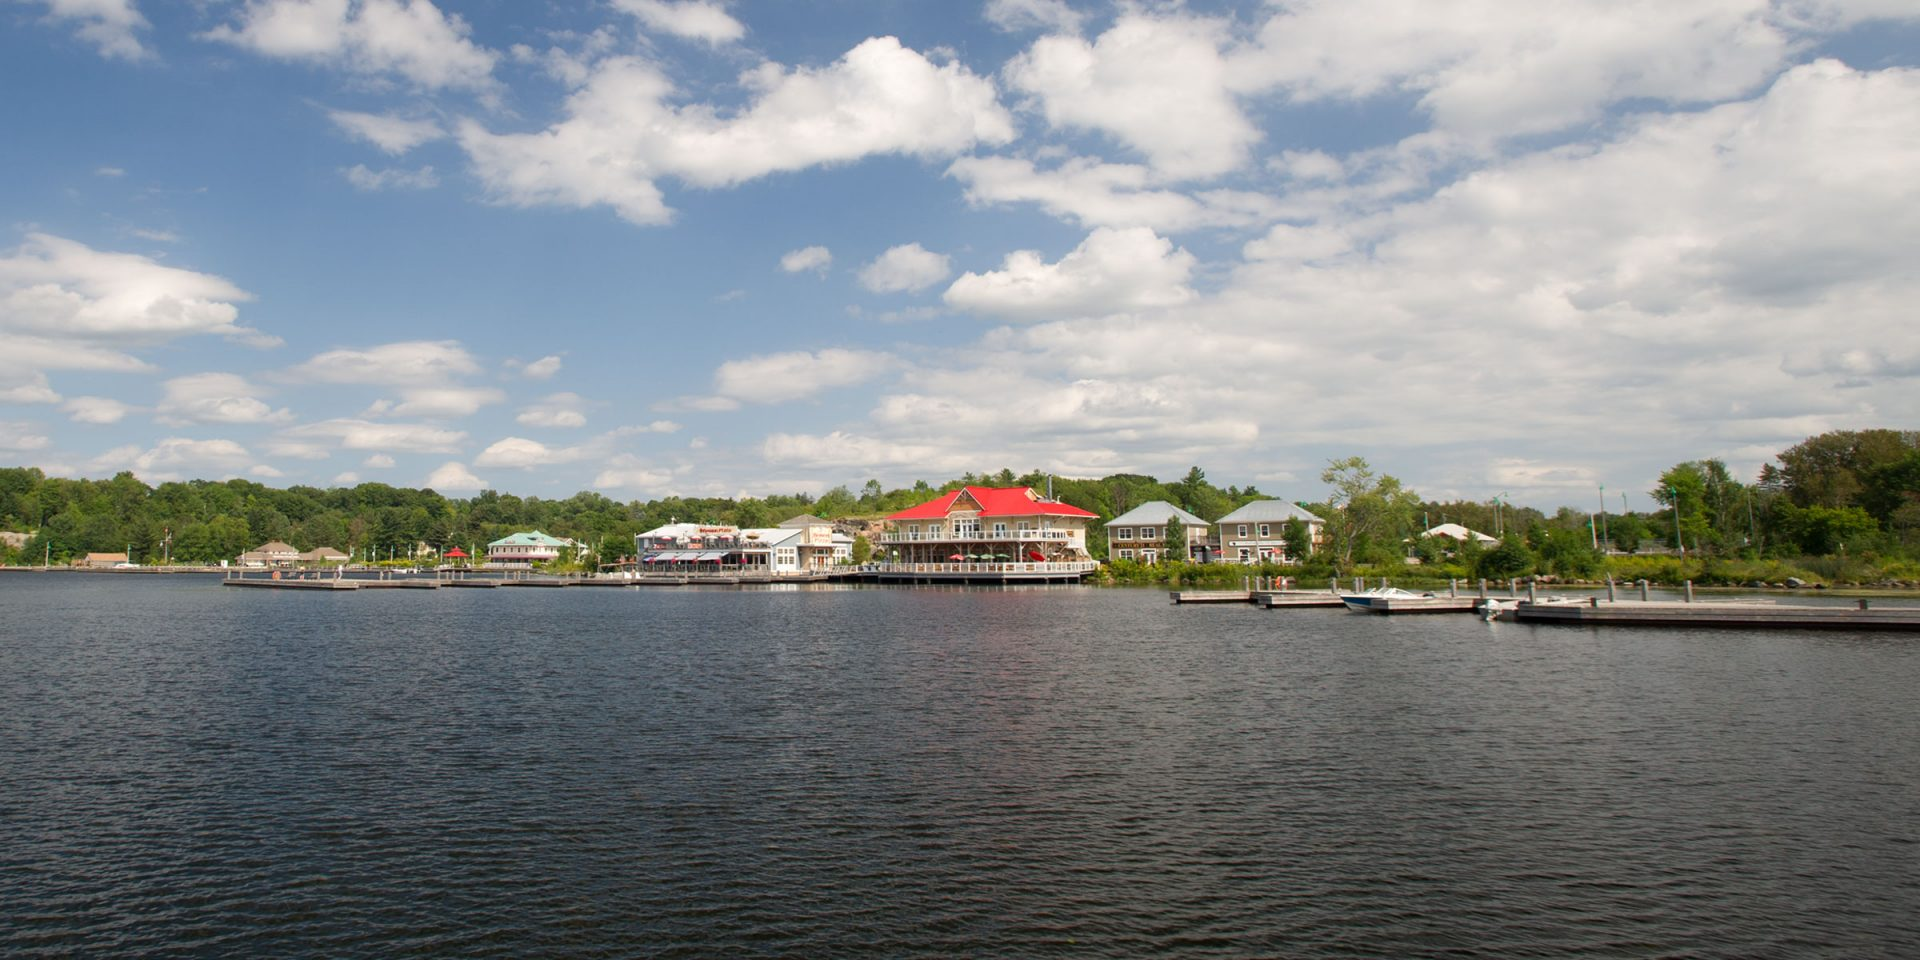 The Muskoka Wharf in Gravenhurst